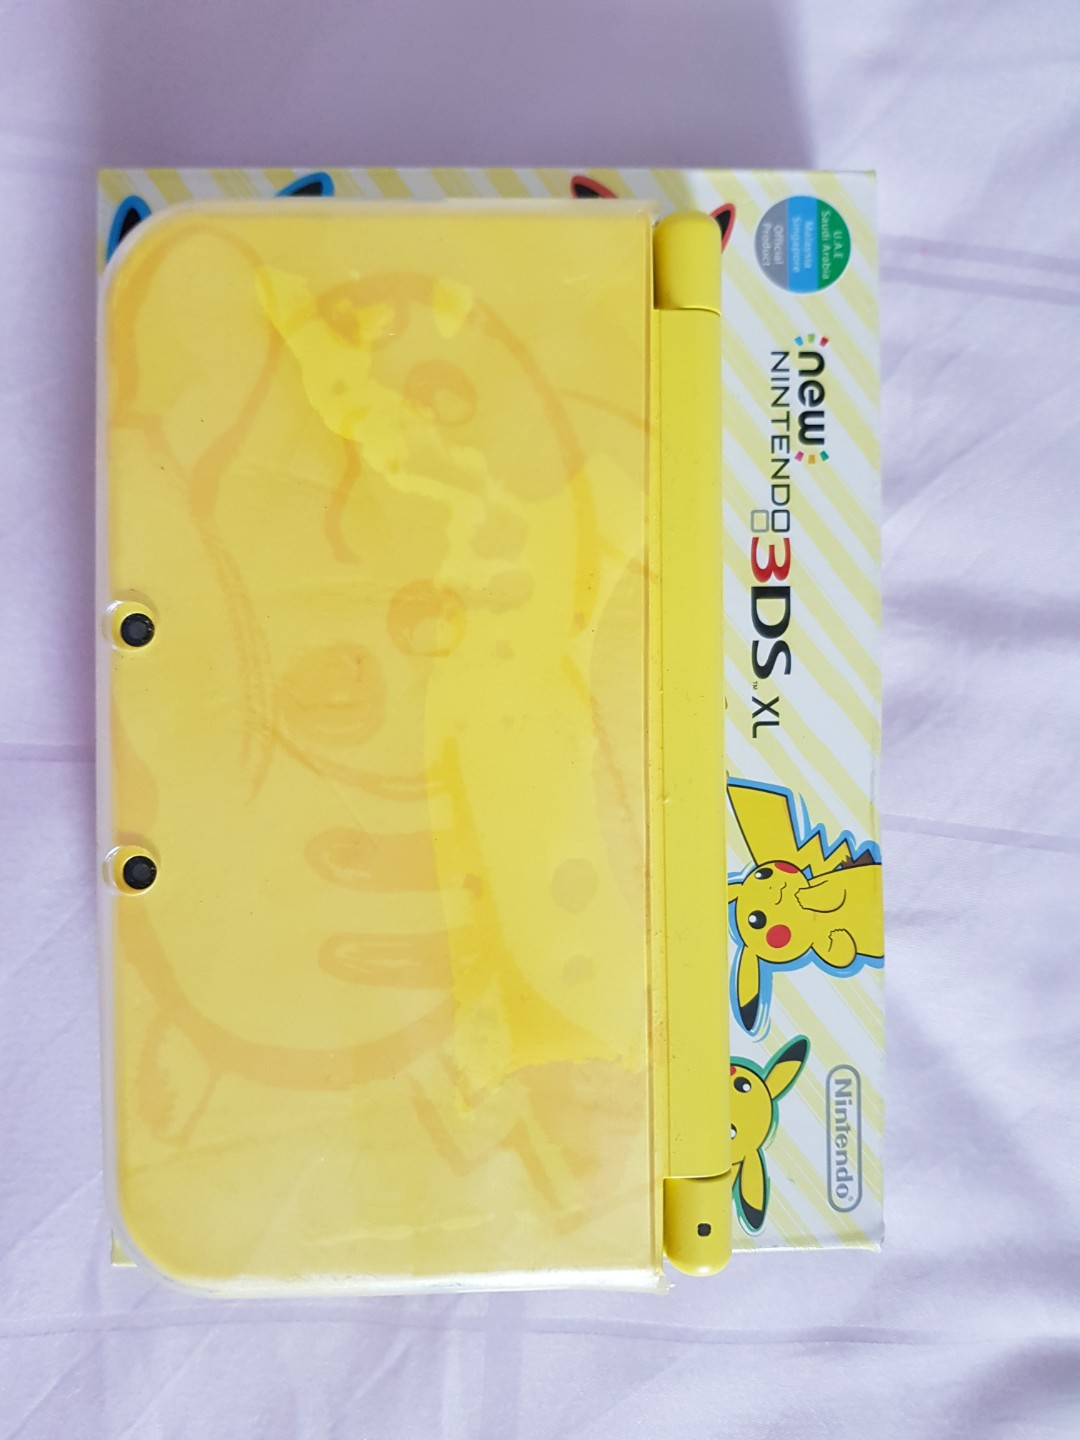 3ds Xl Nintendo Pikachu Yellow Edition Electronics Others On Carousell New